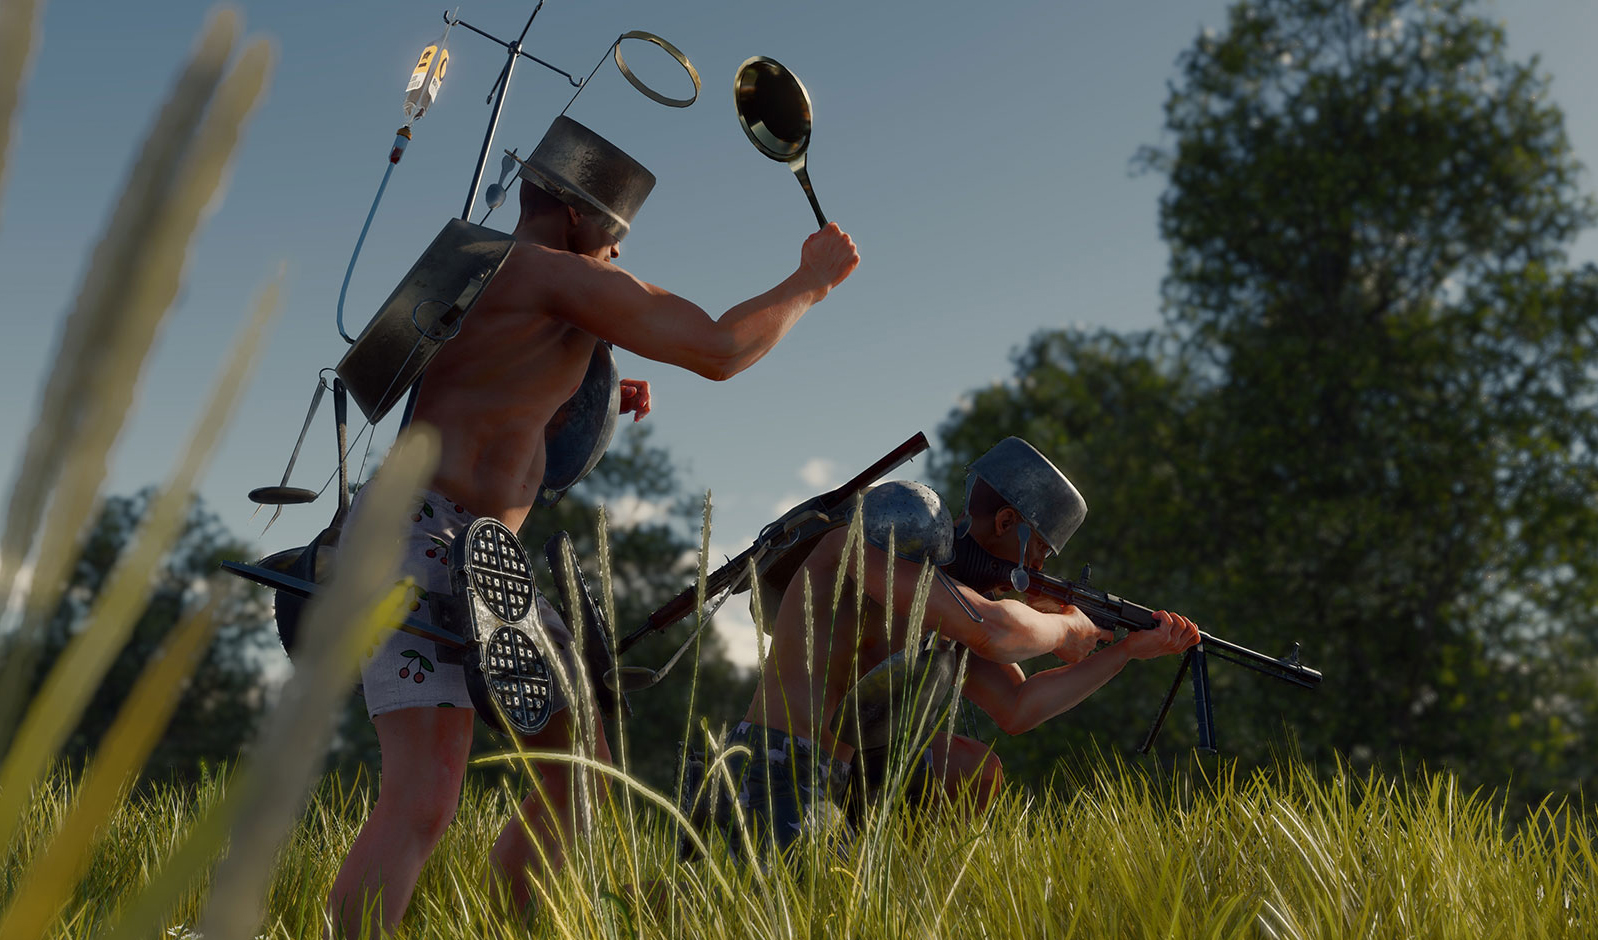 Cuisine Royale How To Heal Cuisine Royale Started As A Joke But It S Now A Fun And